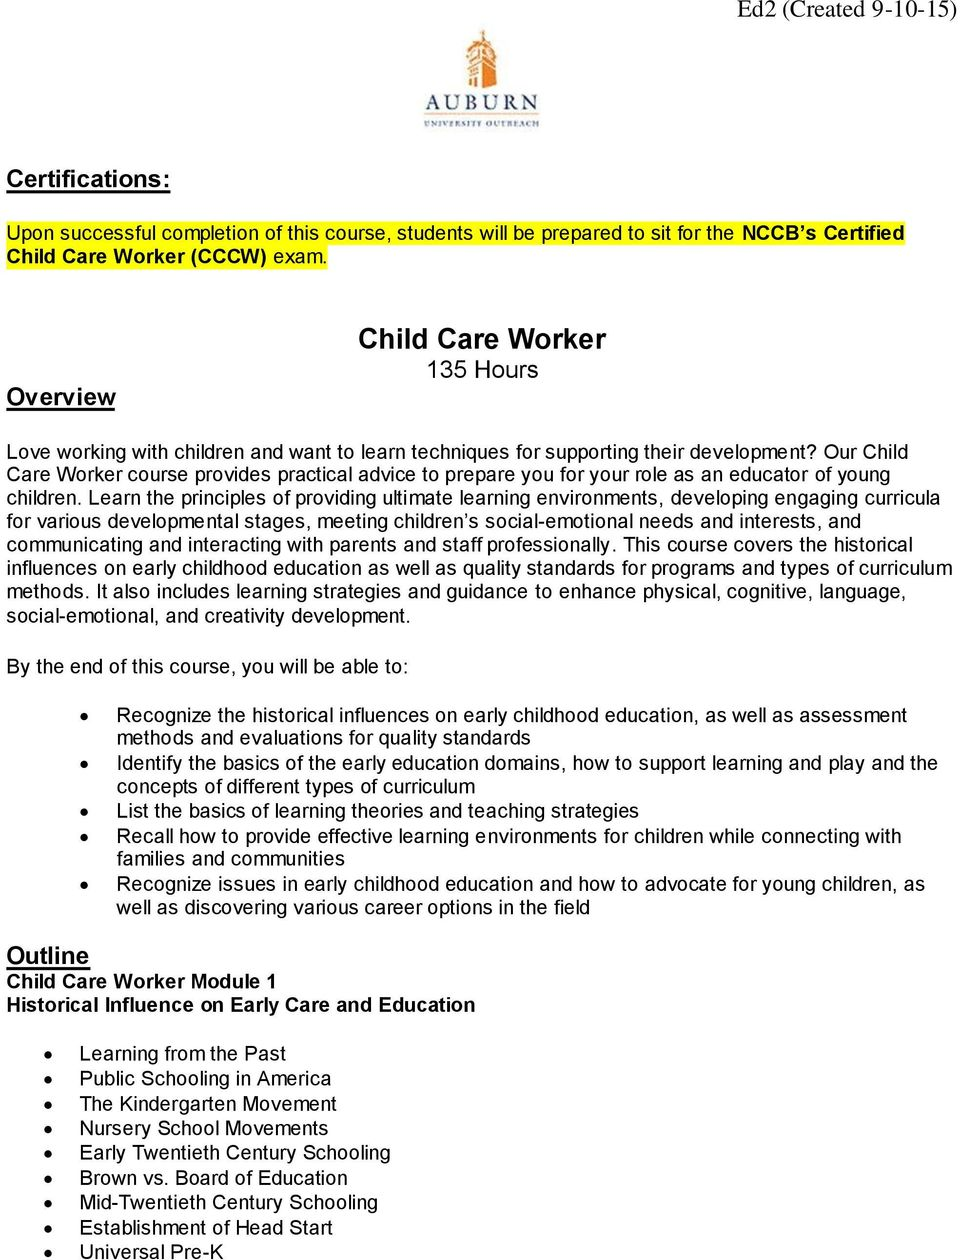 Our Child Care Worker course provides practical advice to prepare you for your role as an educator of young children.